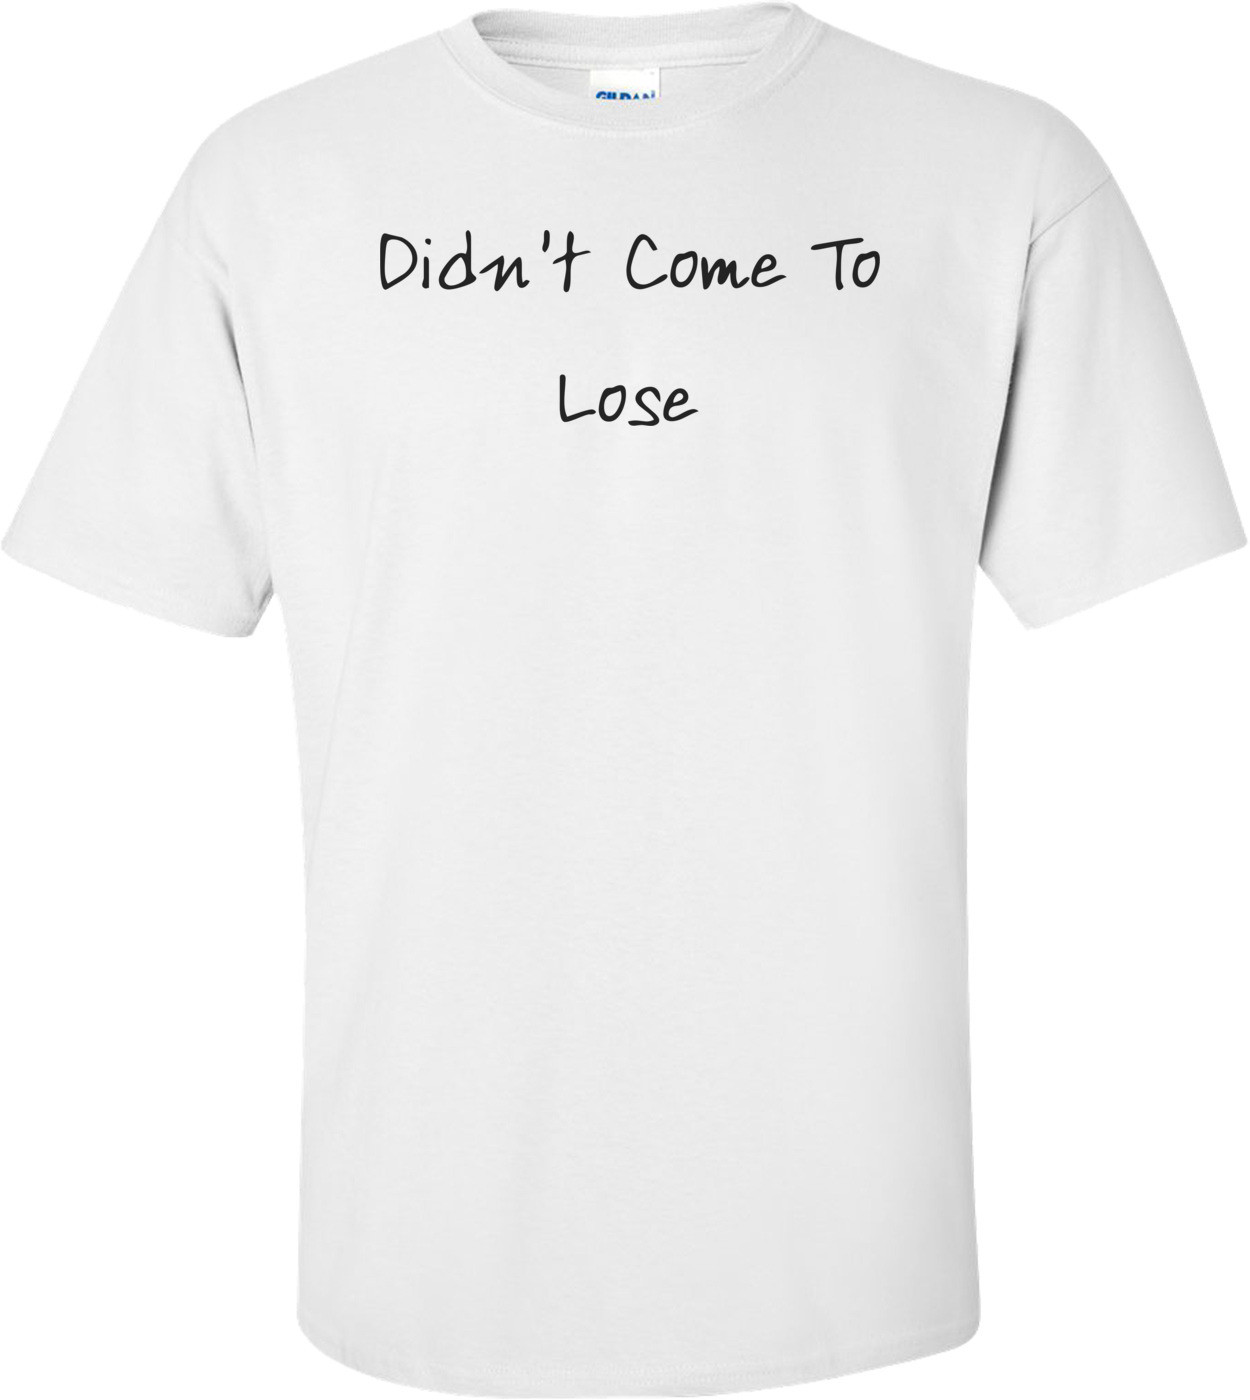 Didn't Come To Lose T-Shirt